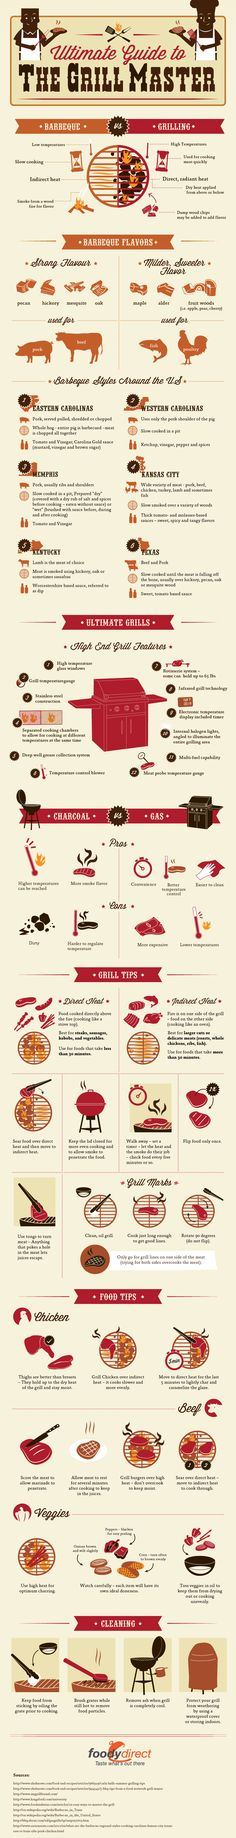 """Whether you're a backyard BBQ beginner or a long-time grilling enthusiast, you're bound to find helpful tips in our newest infographic, """"Ultimate Guide to the Grill Master."""" Read on to learn about the different barbecue styles that are popular throughout the country, how to know when to use direct versus indirect heat, the best way to grill different types of meats and much more. We'll have you manning the grill like a pro in no time!"""